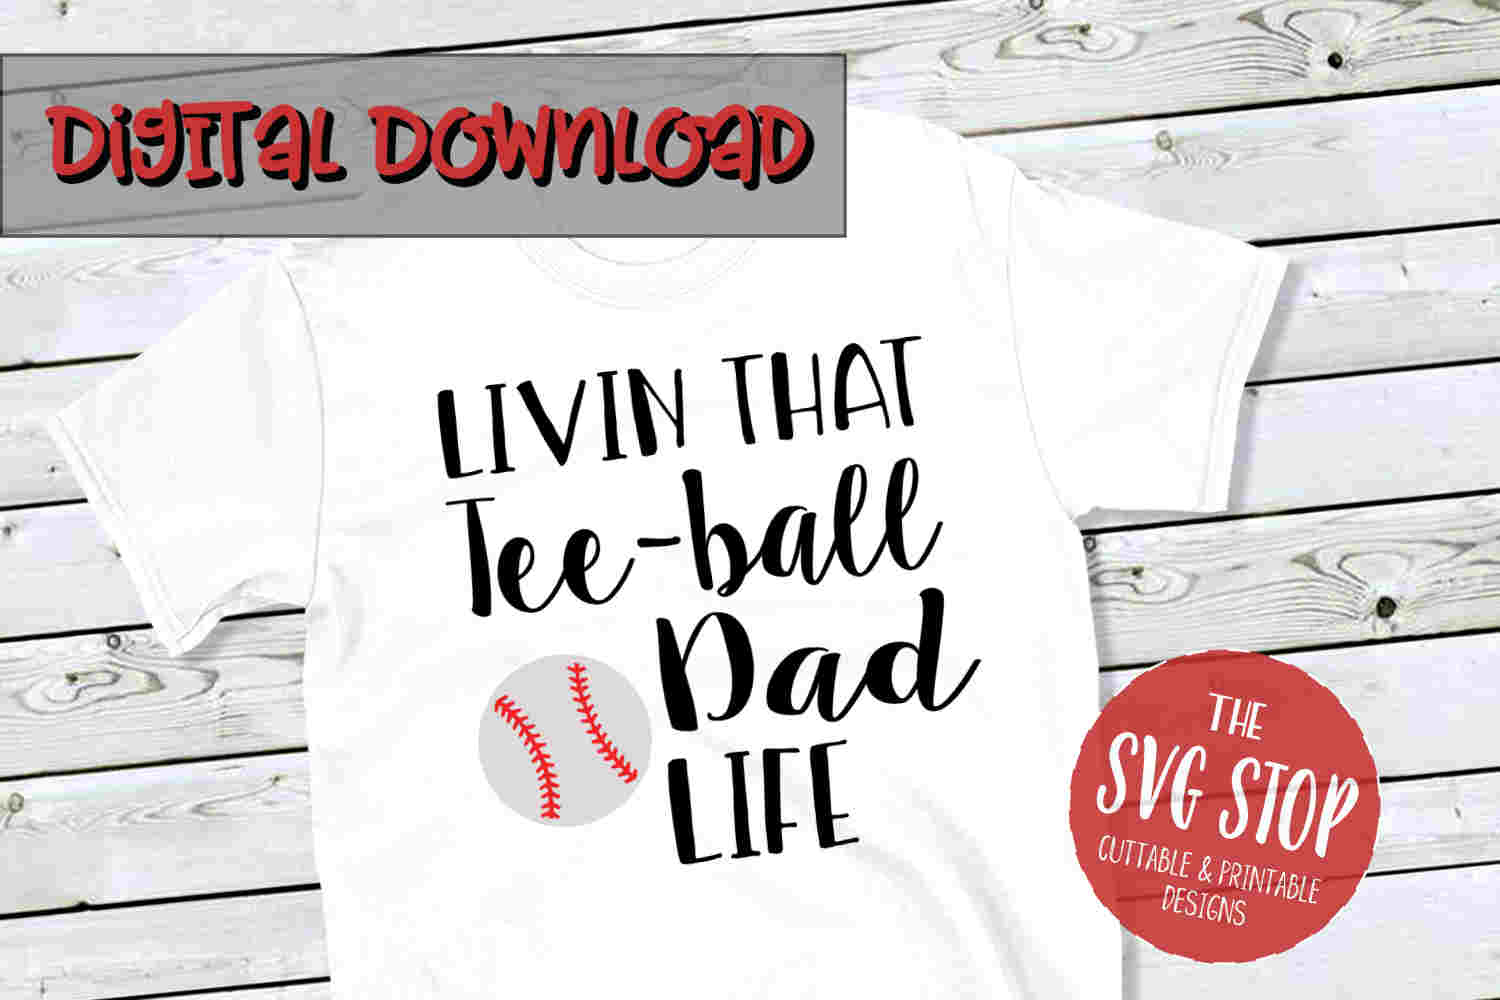 Teeball Dad Life -SVG, PNG, DXF example image 1